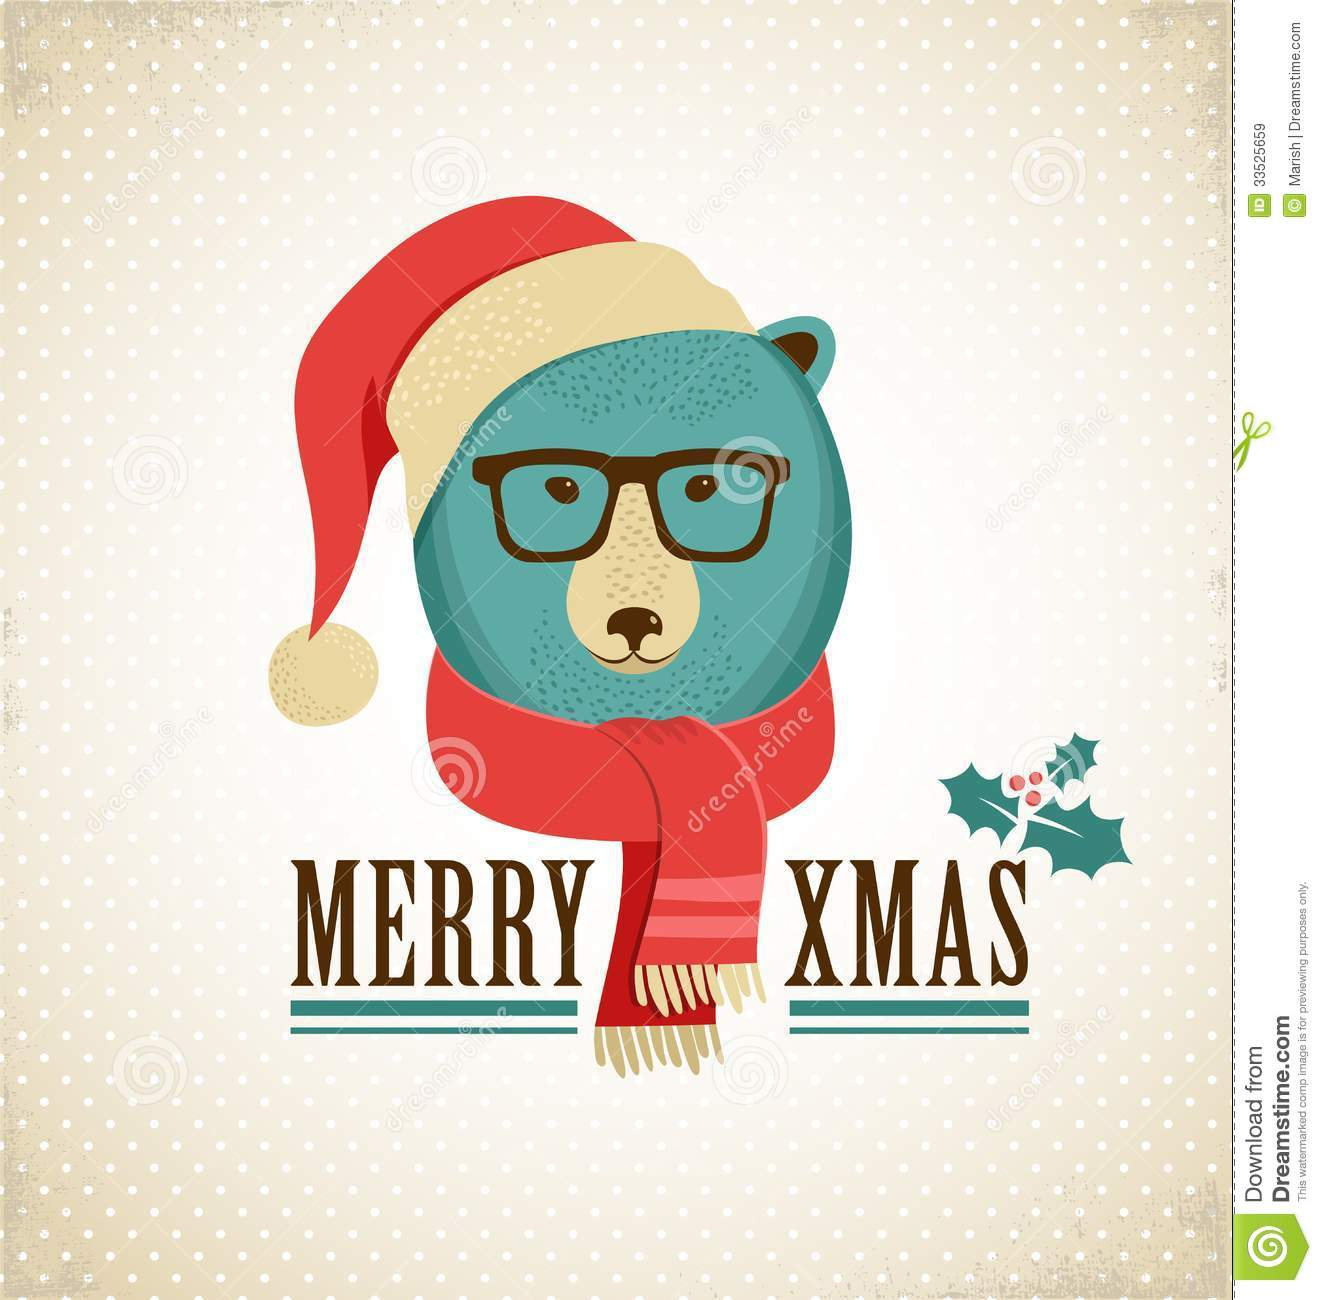 Cute Owl Cartoon Wallpaper Christmas Background With Hipster Bear Stock Vector